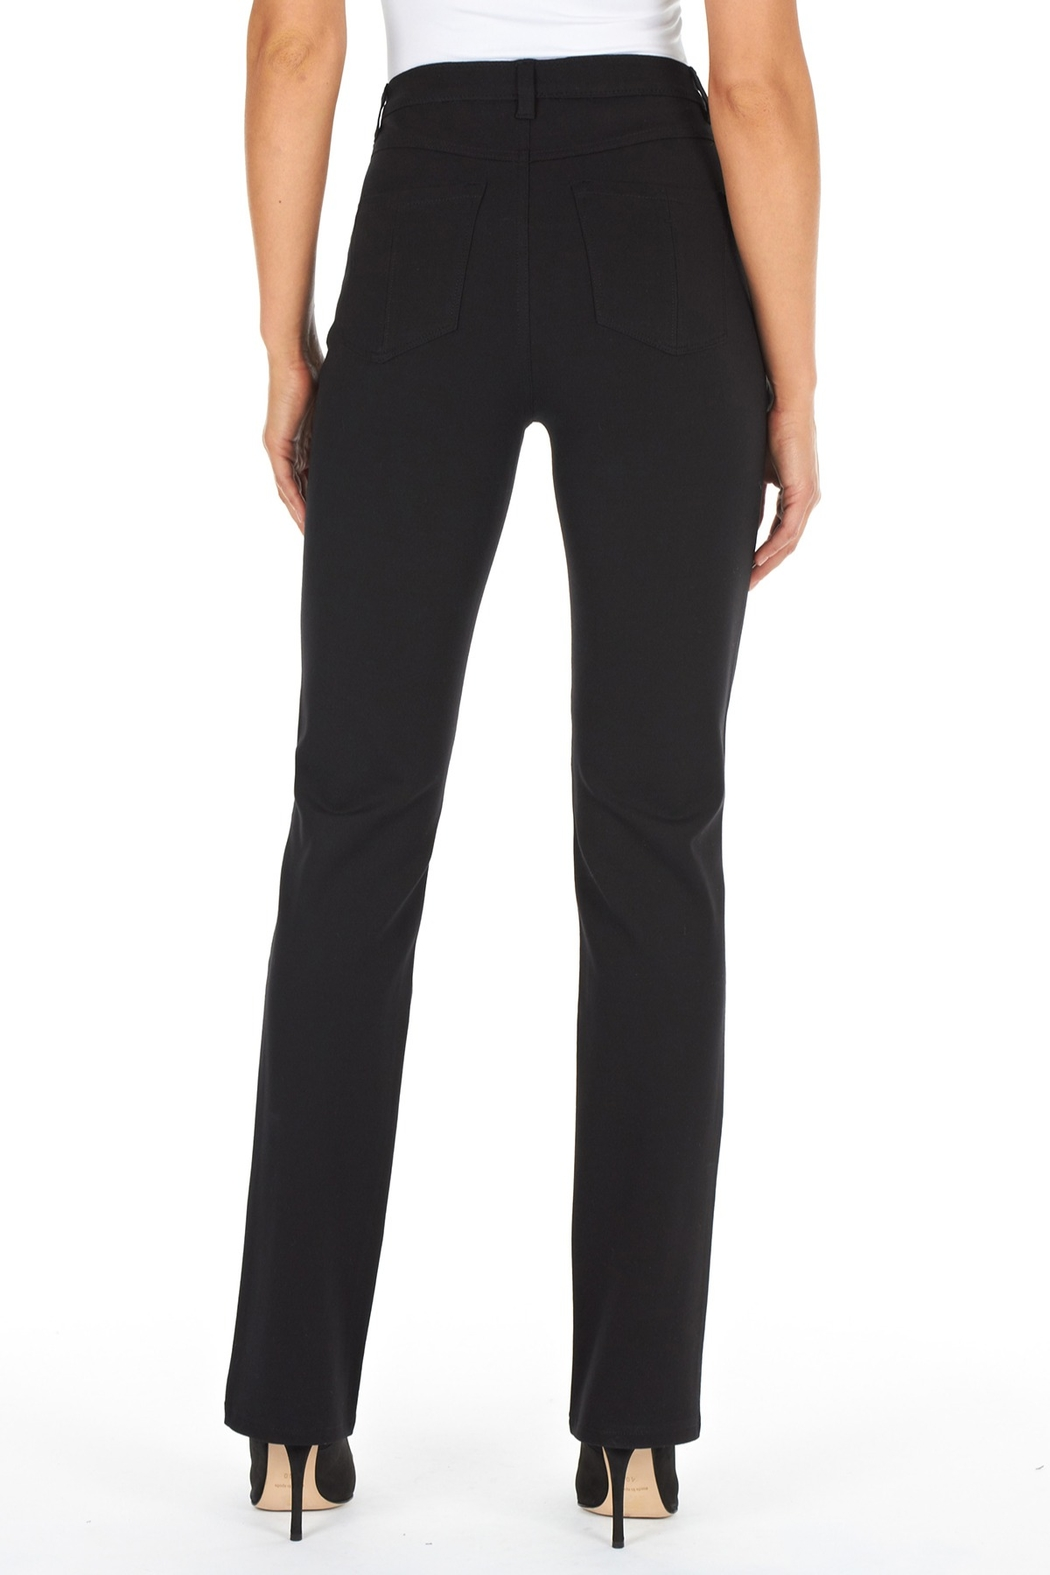 FDJ French Dressing Jeans Suzanne Straight Leg - Front Full Image